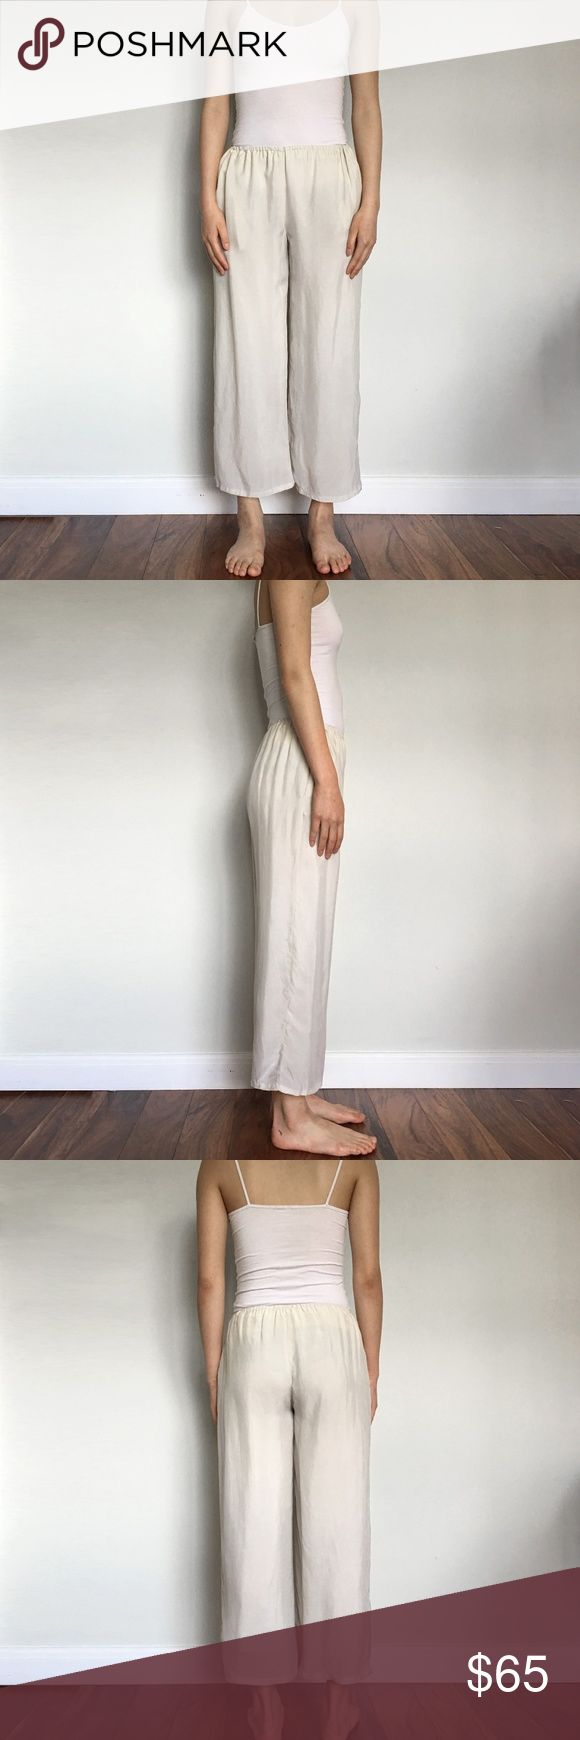 Objects Without Meaning - Beige Lounge Pant Comfortable wide leg lounge pants that breathes like cotton and feels like silk by Objects Without Meaning in beige. Features side pockets, thin elastic waistband, fully lined.  Size: XS  Details: 100% Cupro  Condition: Like New - No visible signs of wear Objects Without Meaning Pants Wide Leg